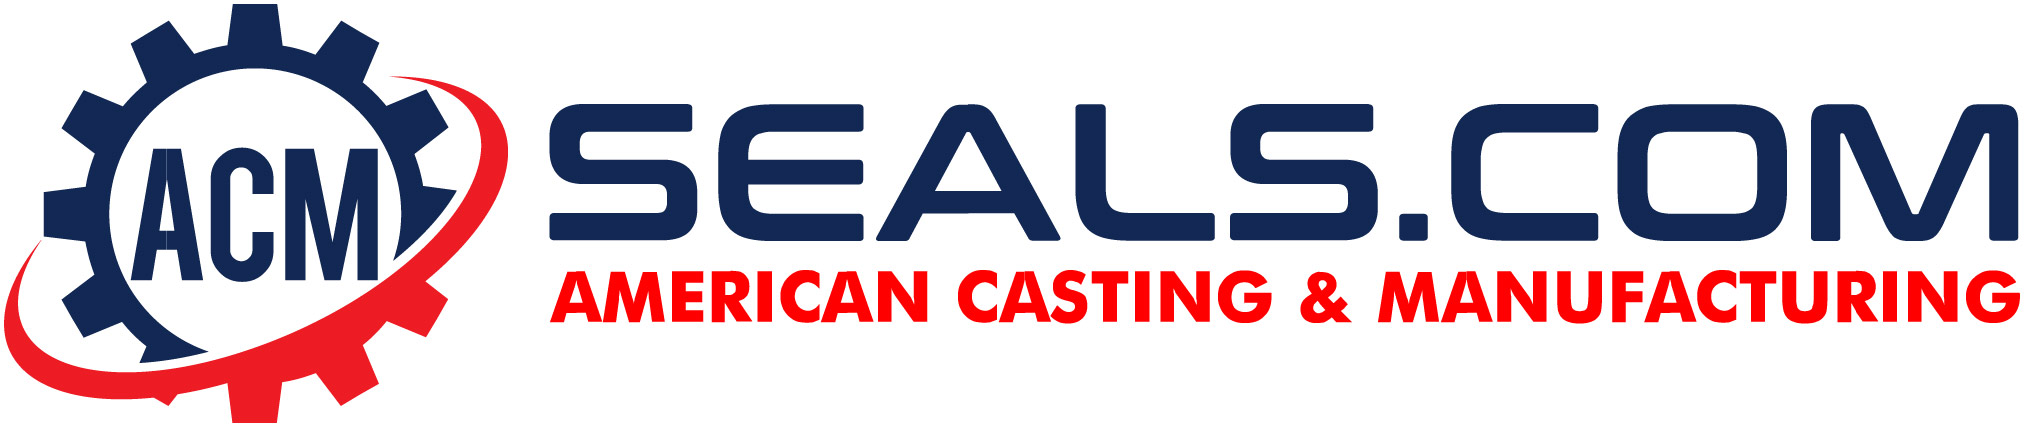 American Casting & Manufacturing Corp.